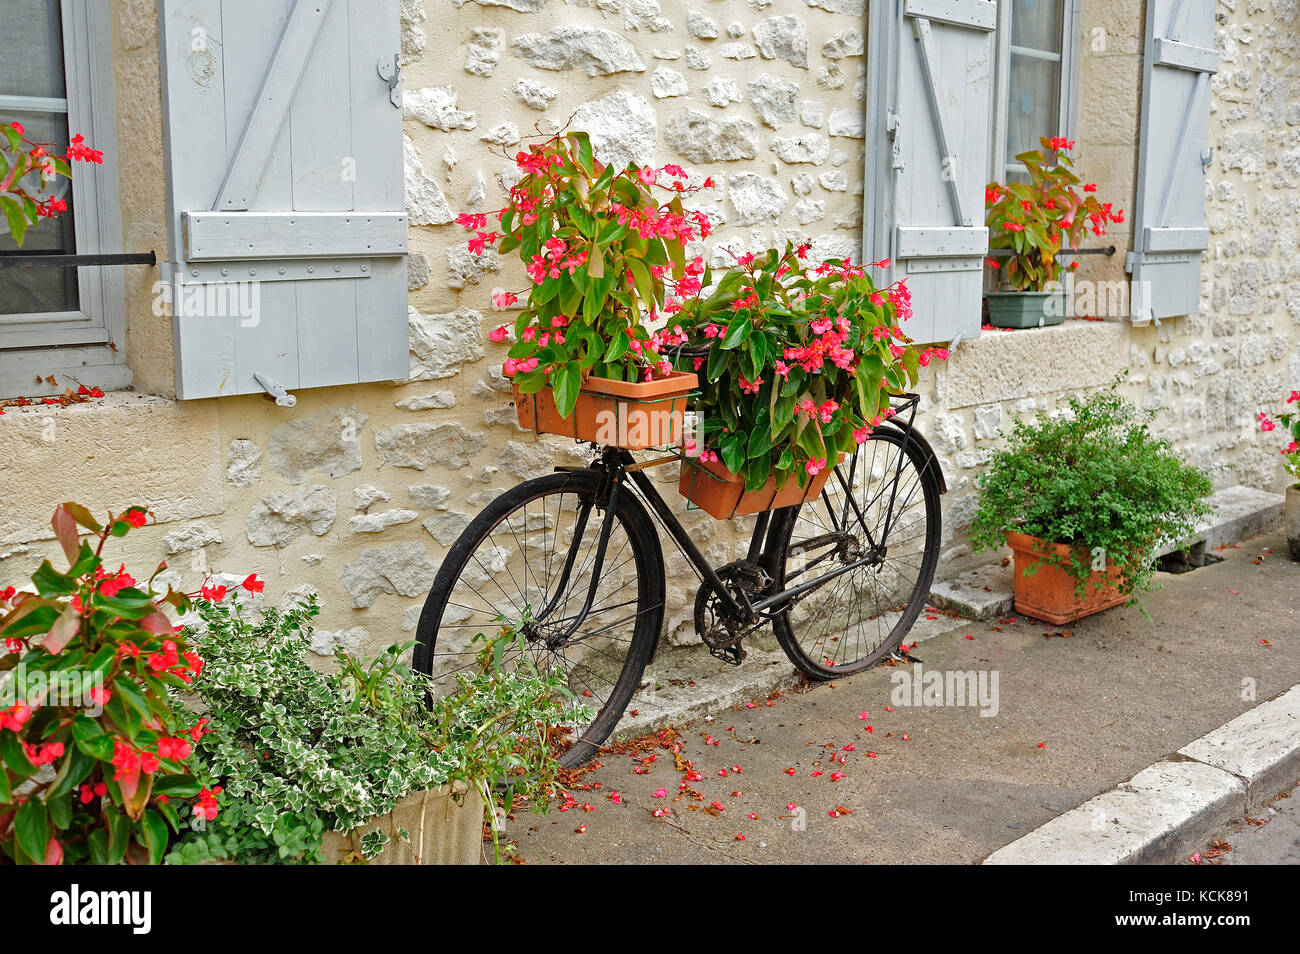 Uncategorized Bicycle Planters bicycle planter stock photos images alamy old used as issigeac dordogne department aquitaine france stock